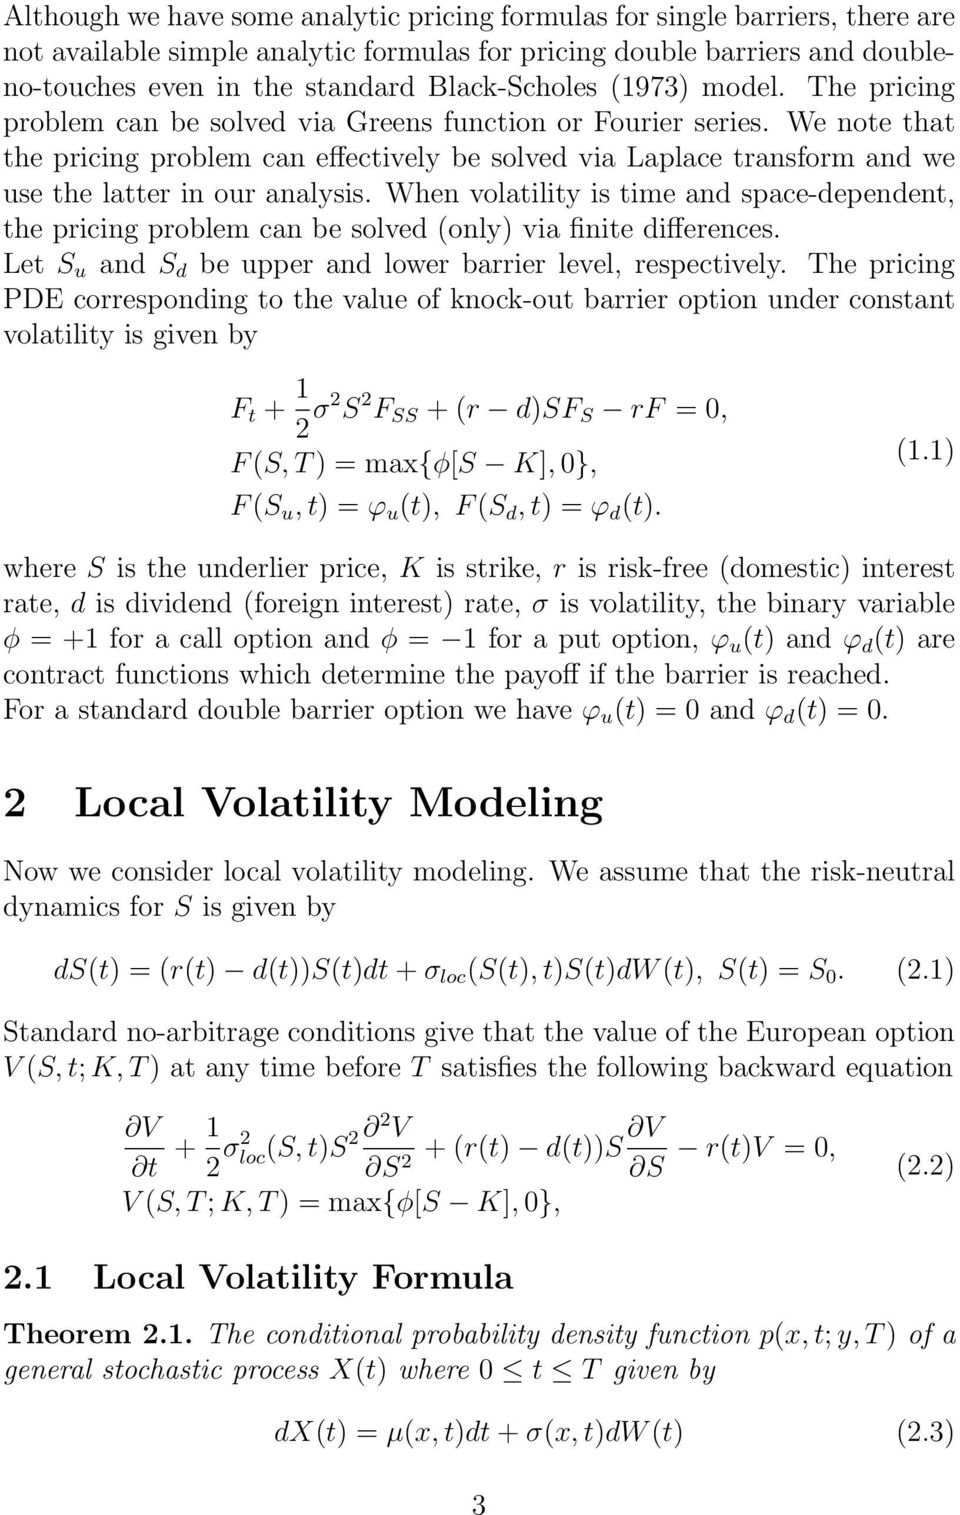 We note that the pricing problem can effectively be solved via Laplace transform and we use the latter in our analysis.